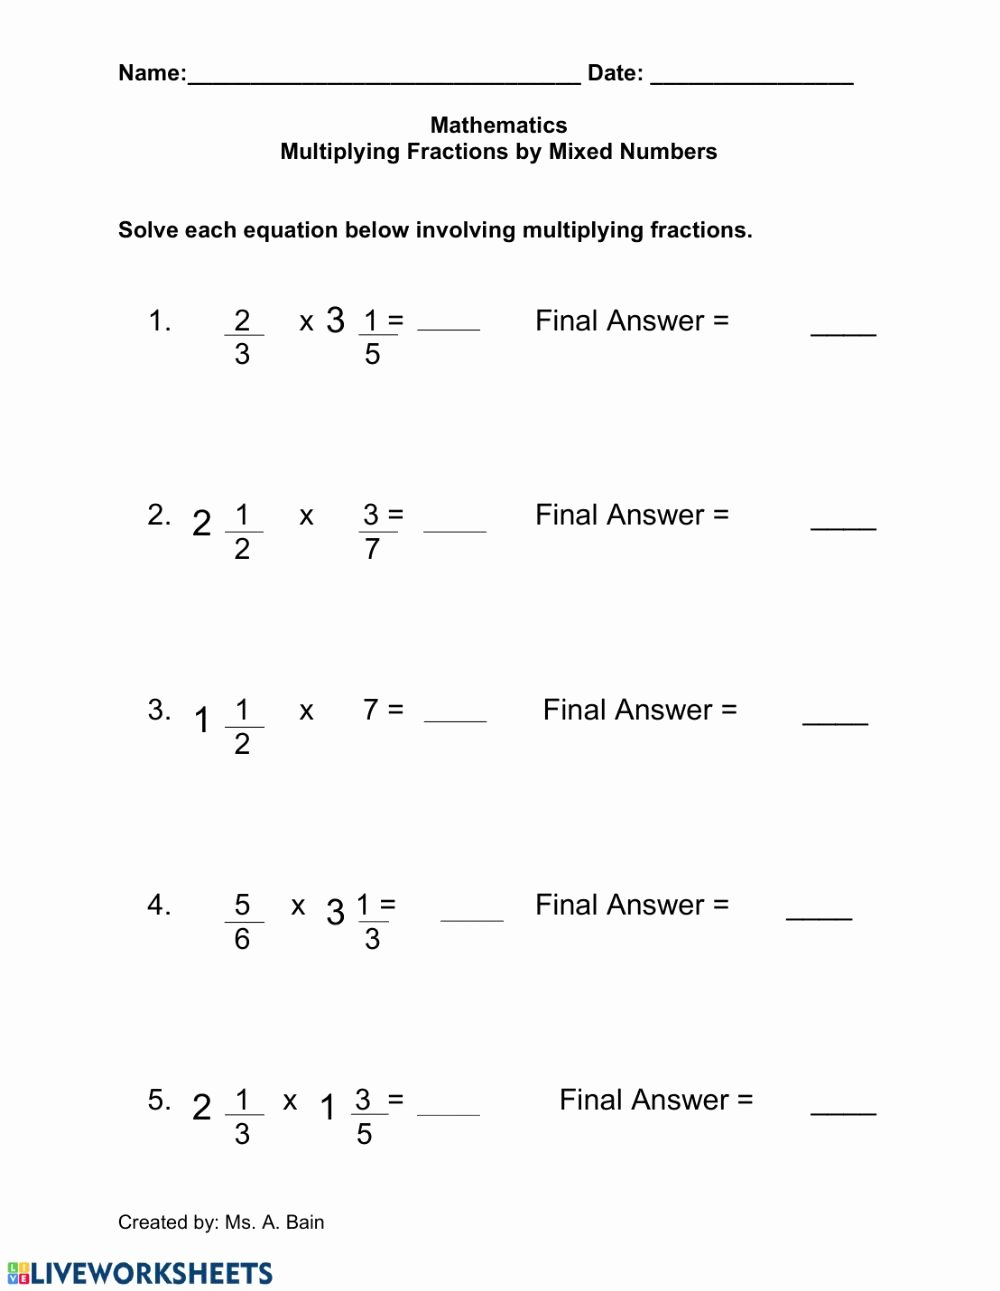 Fraction Multiplication Worksheets Inspirational Multiplying Fractions by A Mixed Number Interactive Worksheet